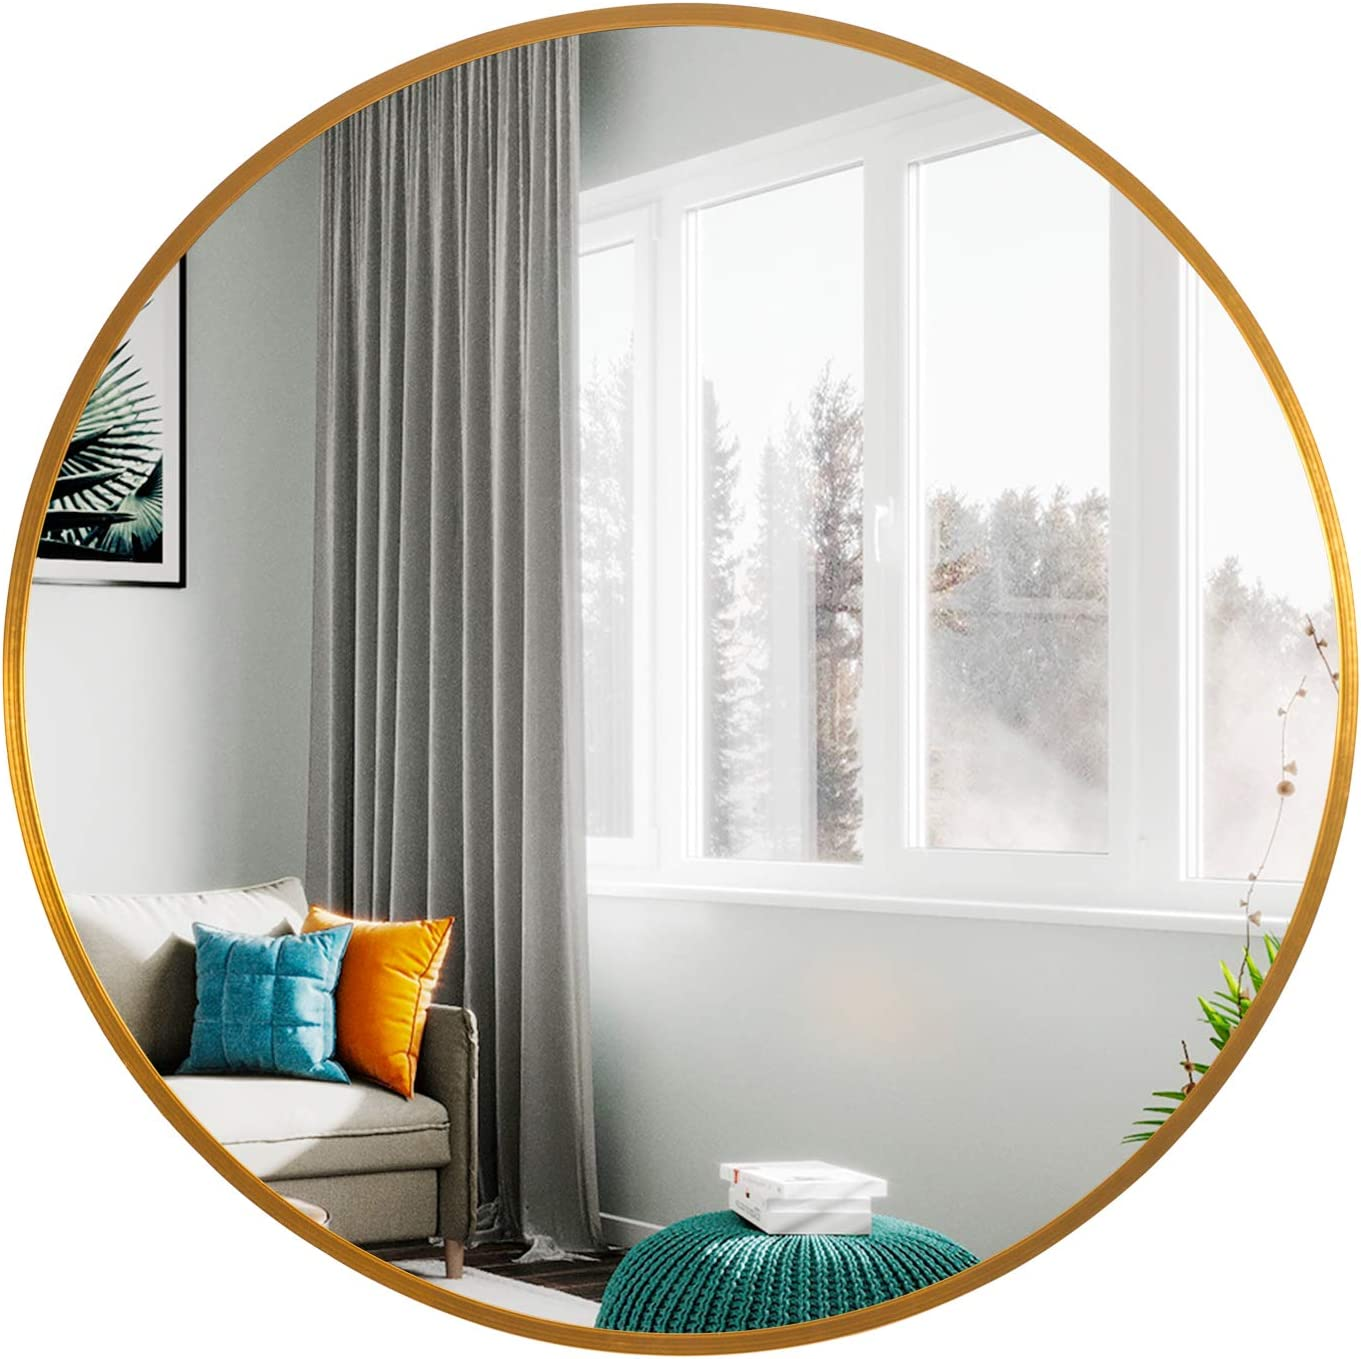 Leafshop Cheap mail order specialty store Leafmirror Round Wall Mirror Frame Circle Ranking TOP11 Metal Large V